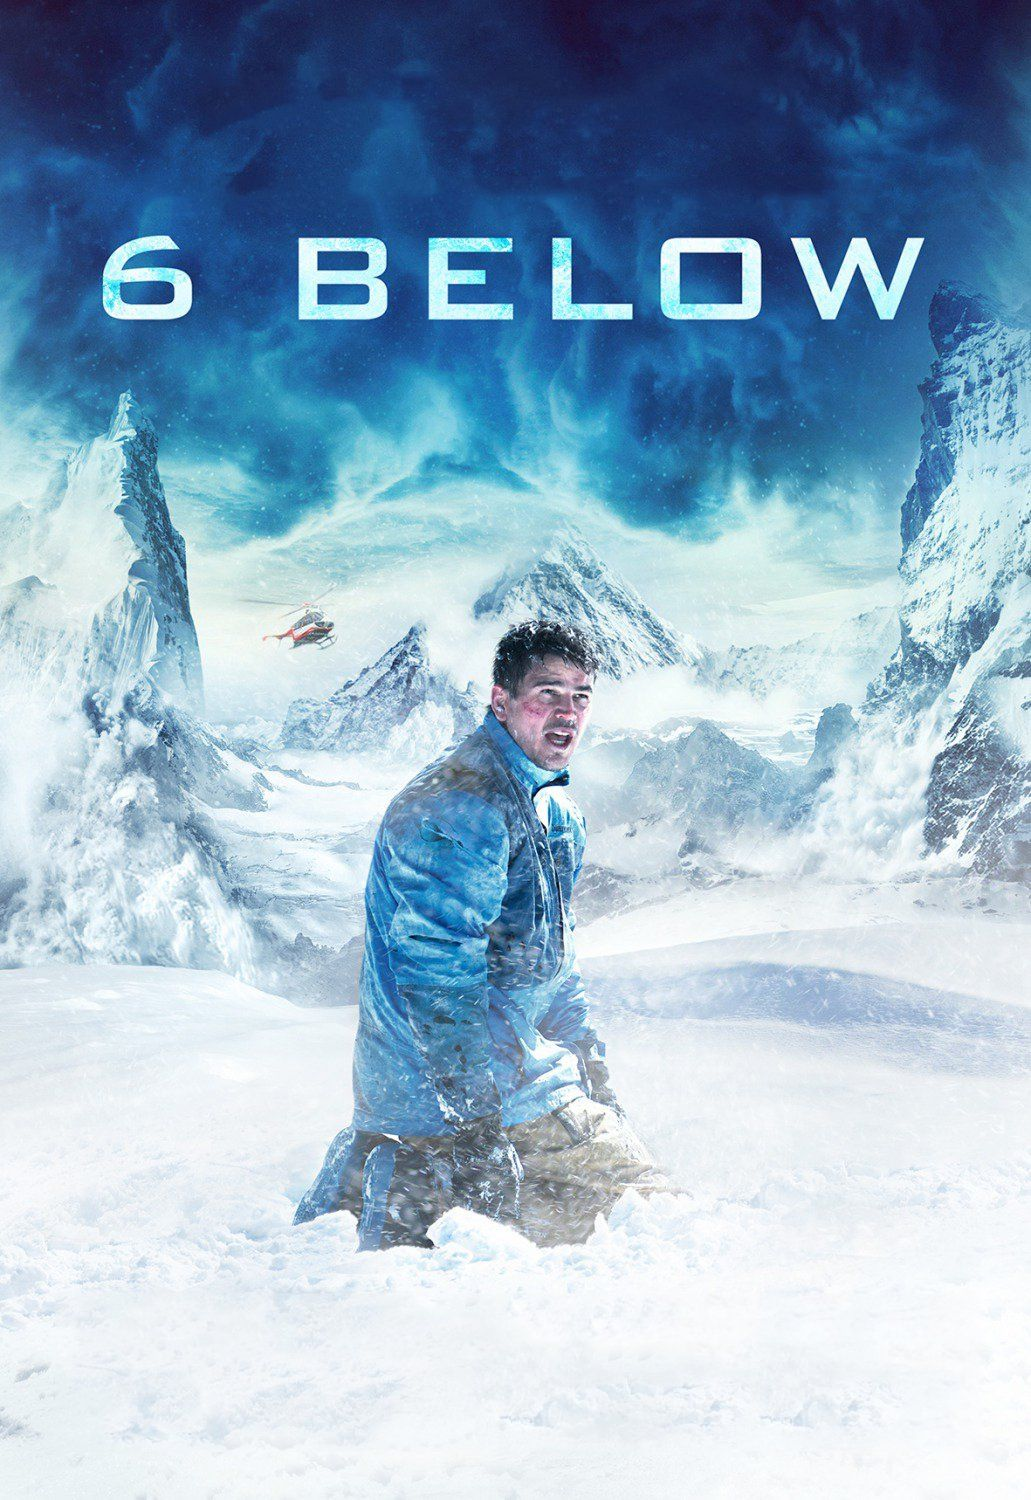 Watch 6 Below Miracle On The Mountain Full Hd Movie Online Hd Movies